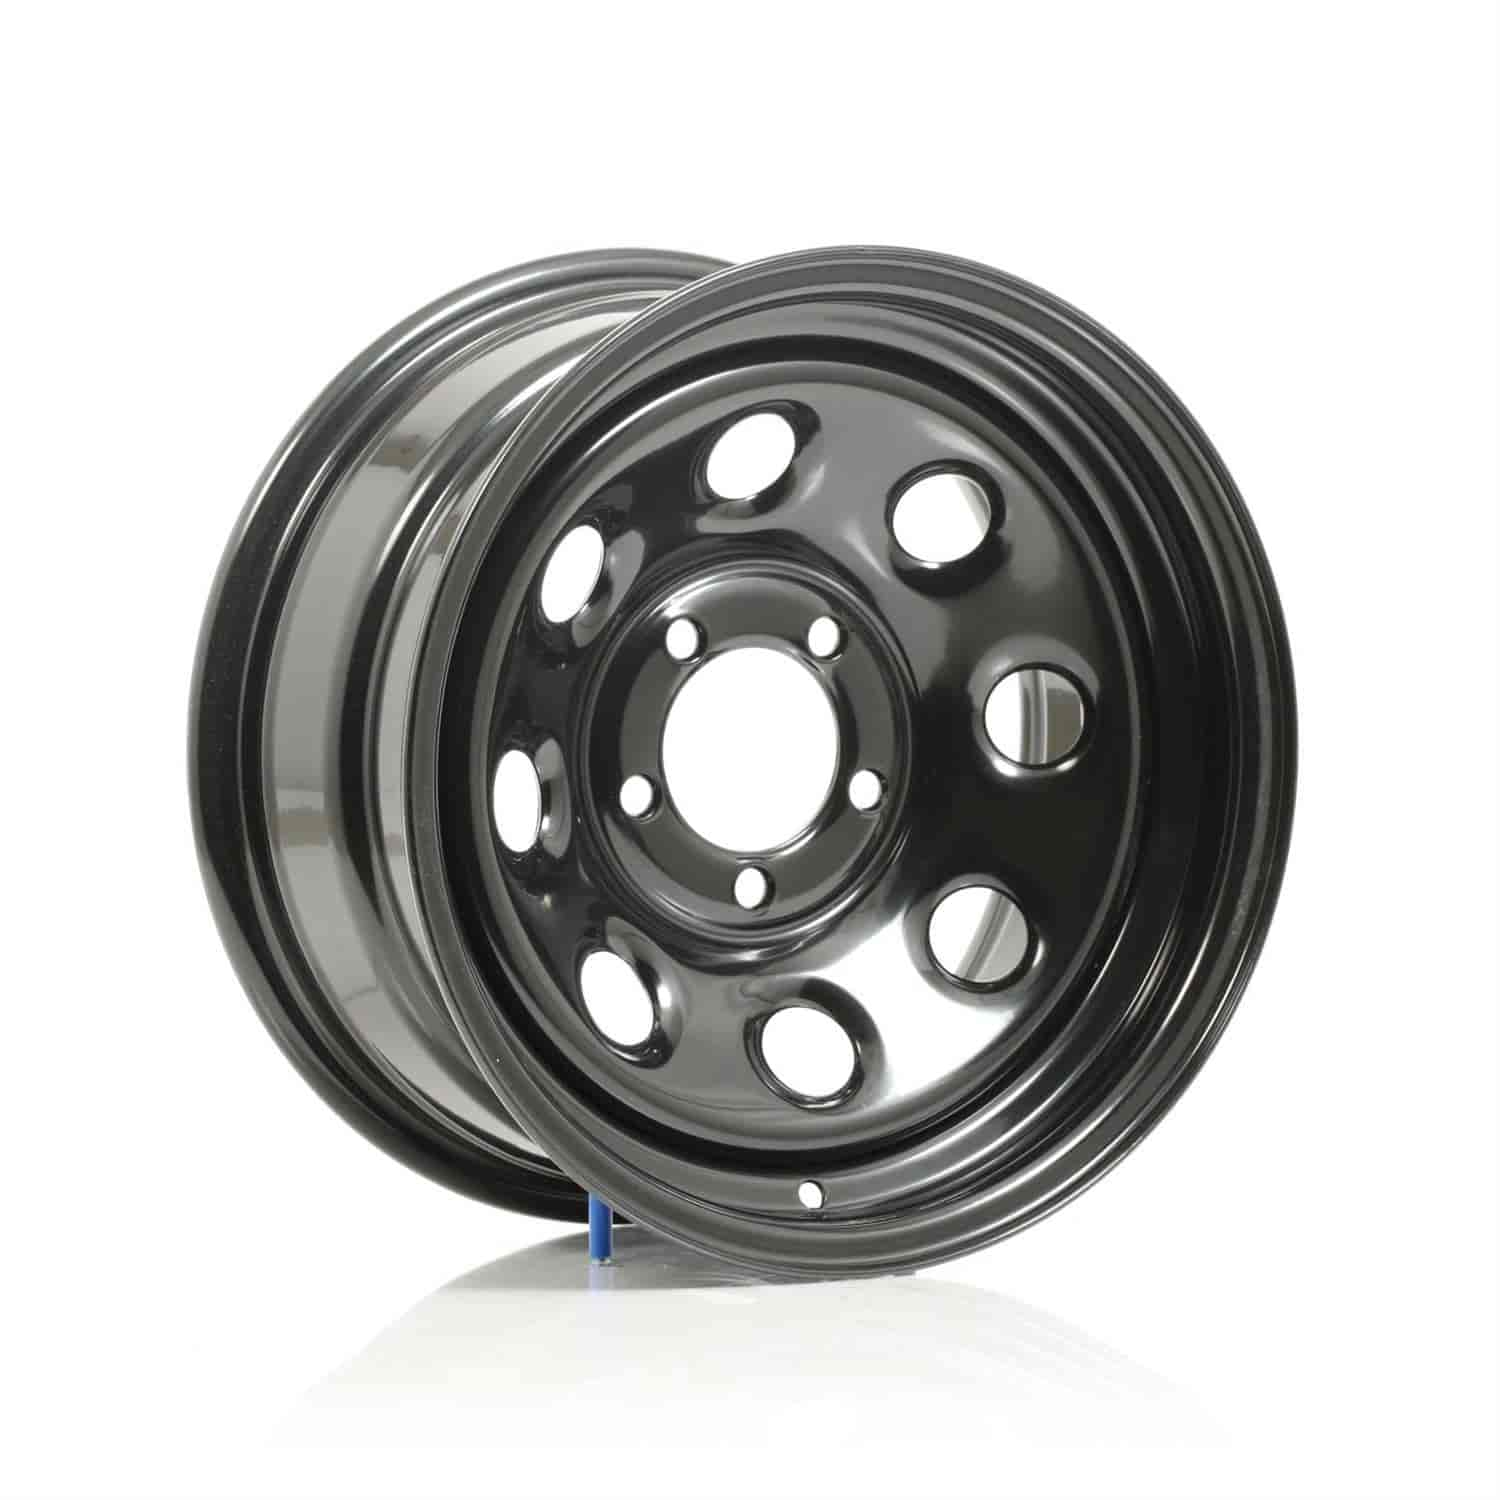 Cragar 3975712 - Cragar Black Soft 8 Wheels